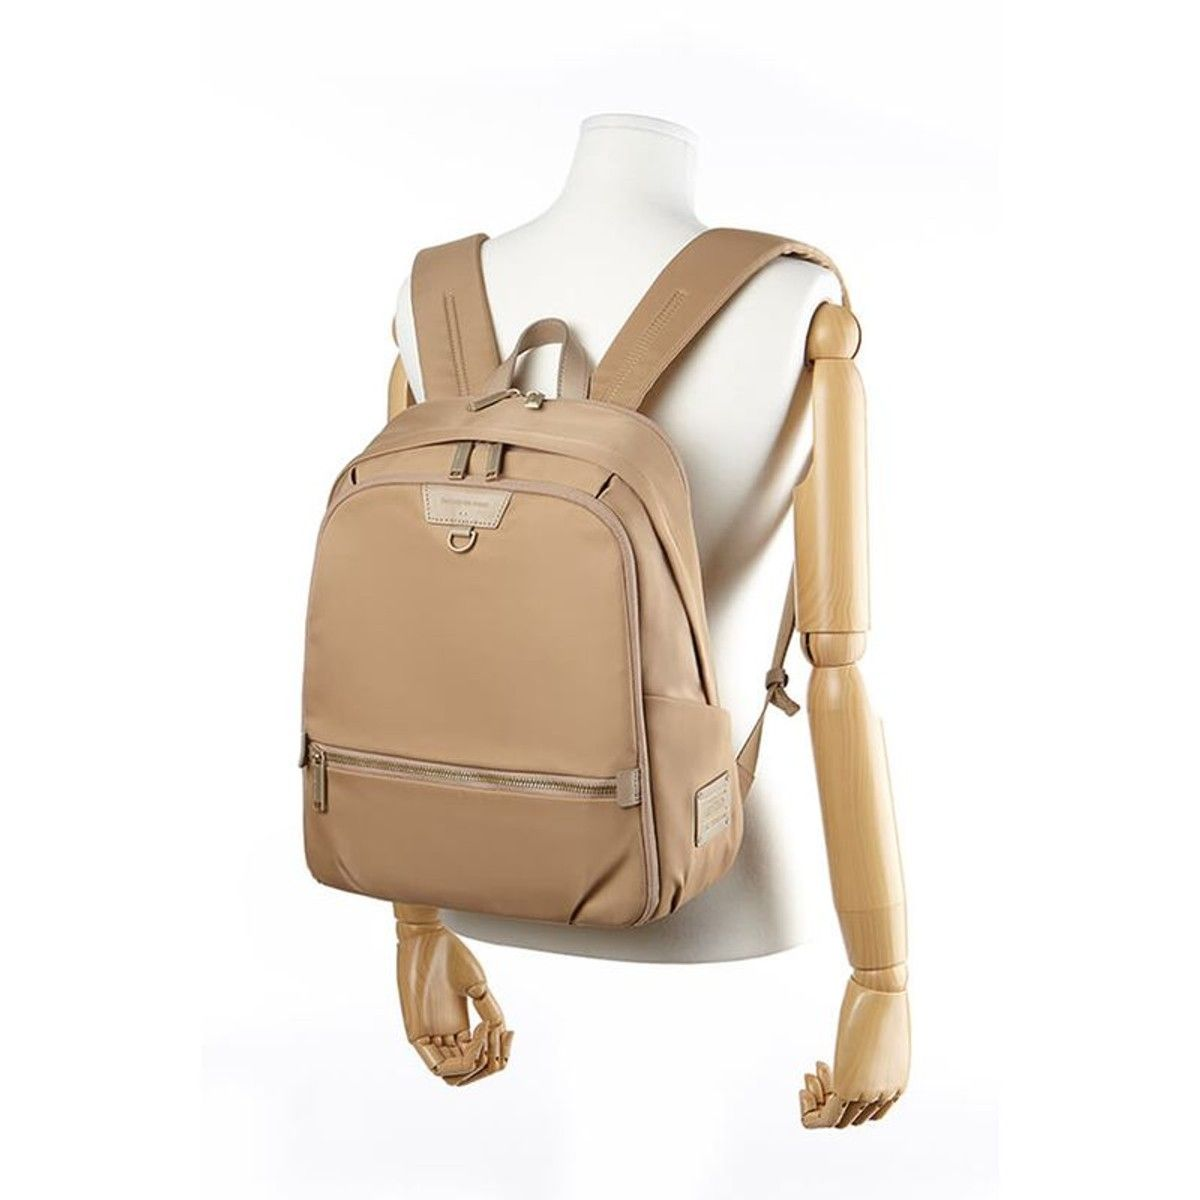 S Sac Mode À Dos Everete Femme TailleTuProducts WE29HDYI